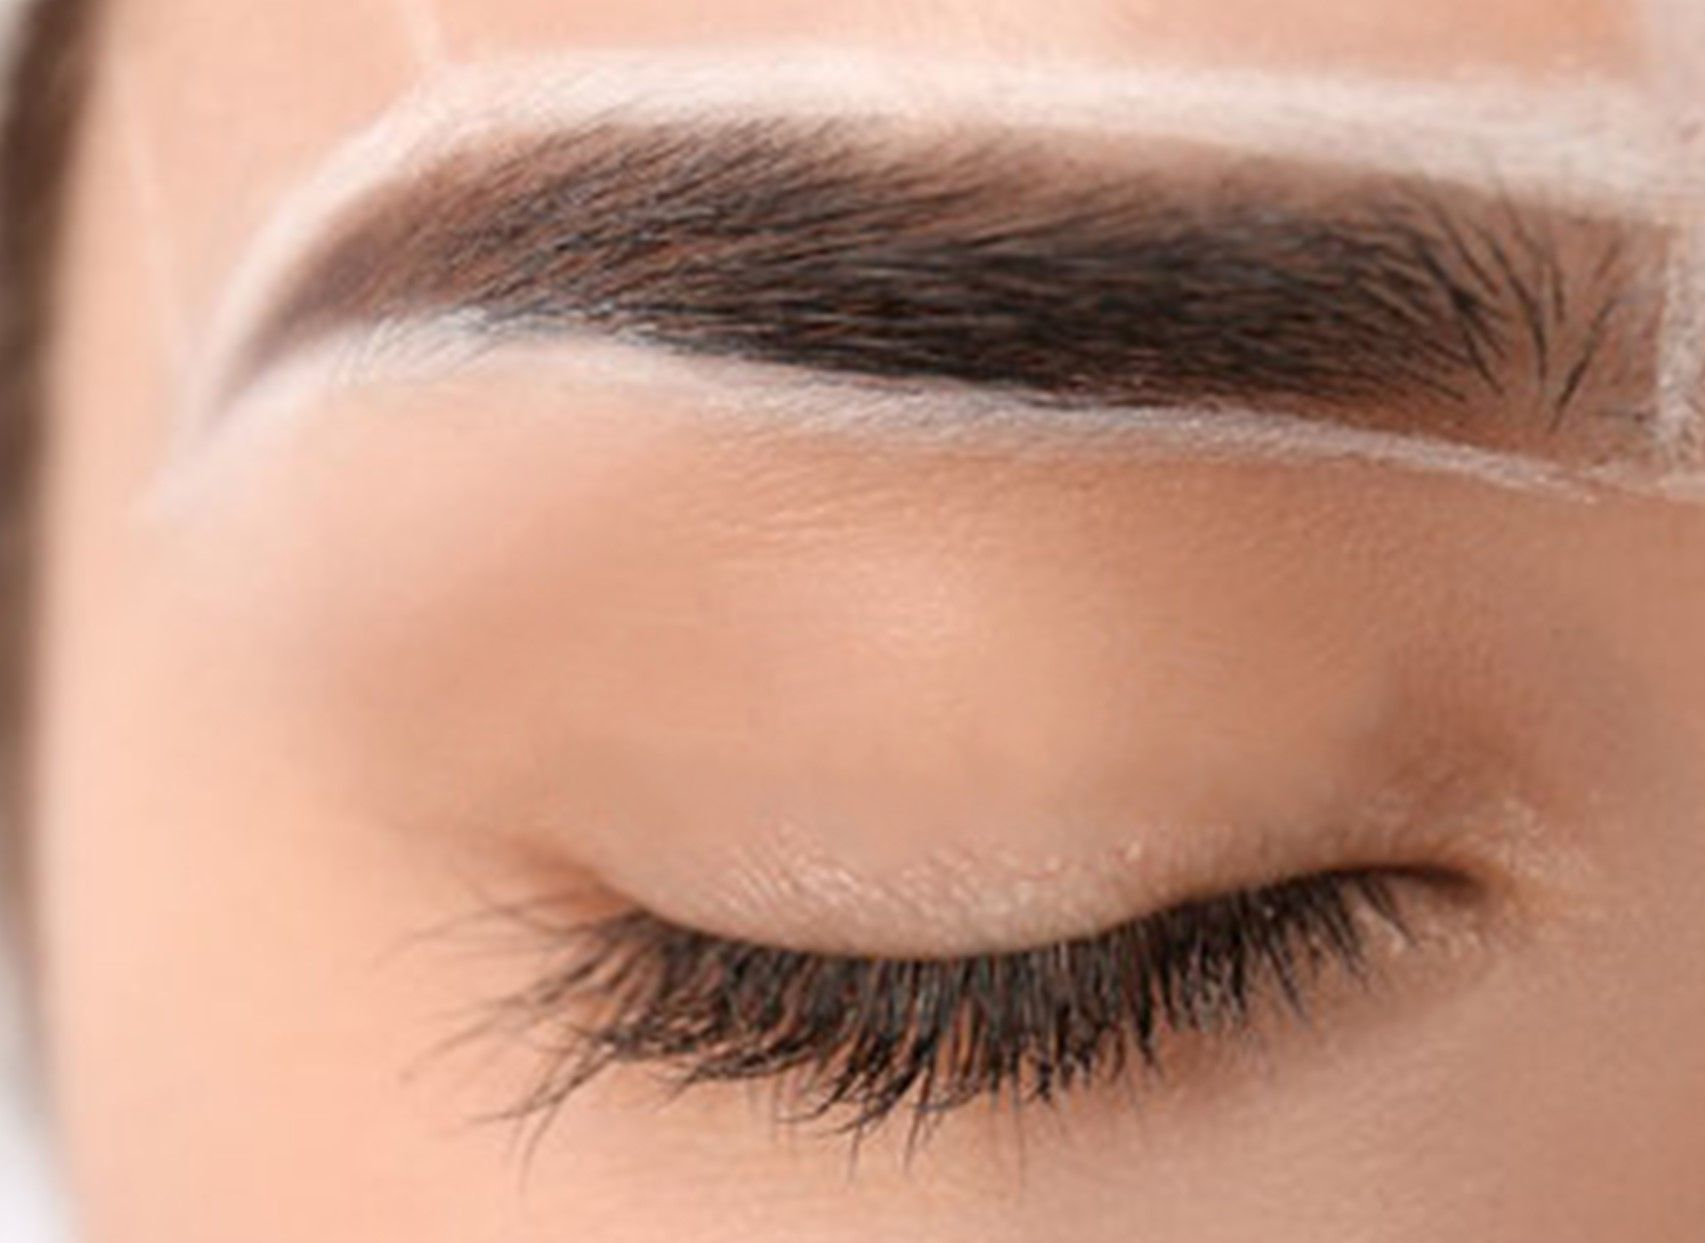 Eyebrows outline with white pencil